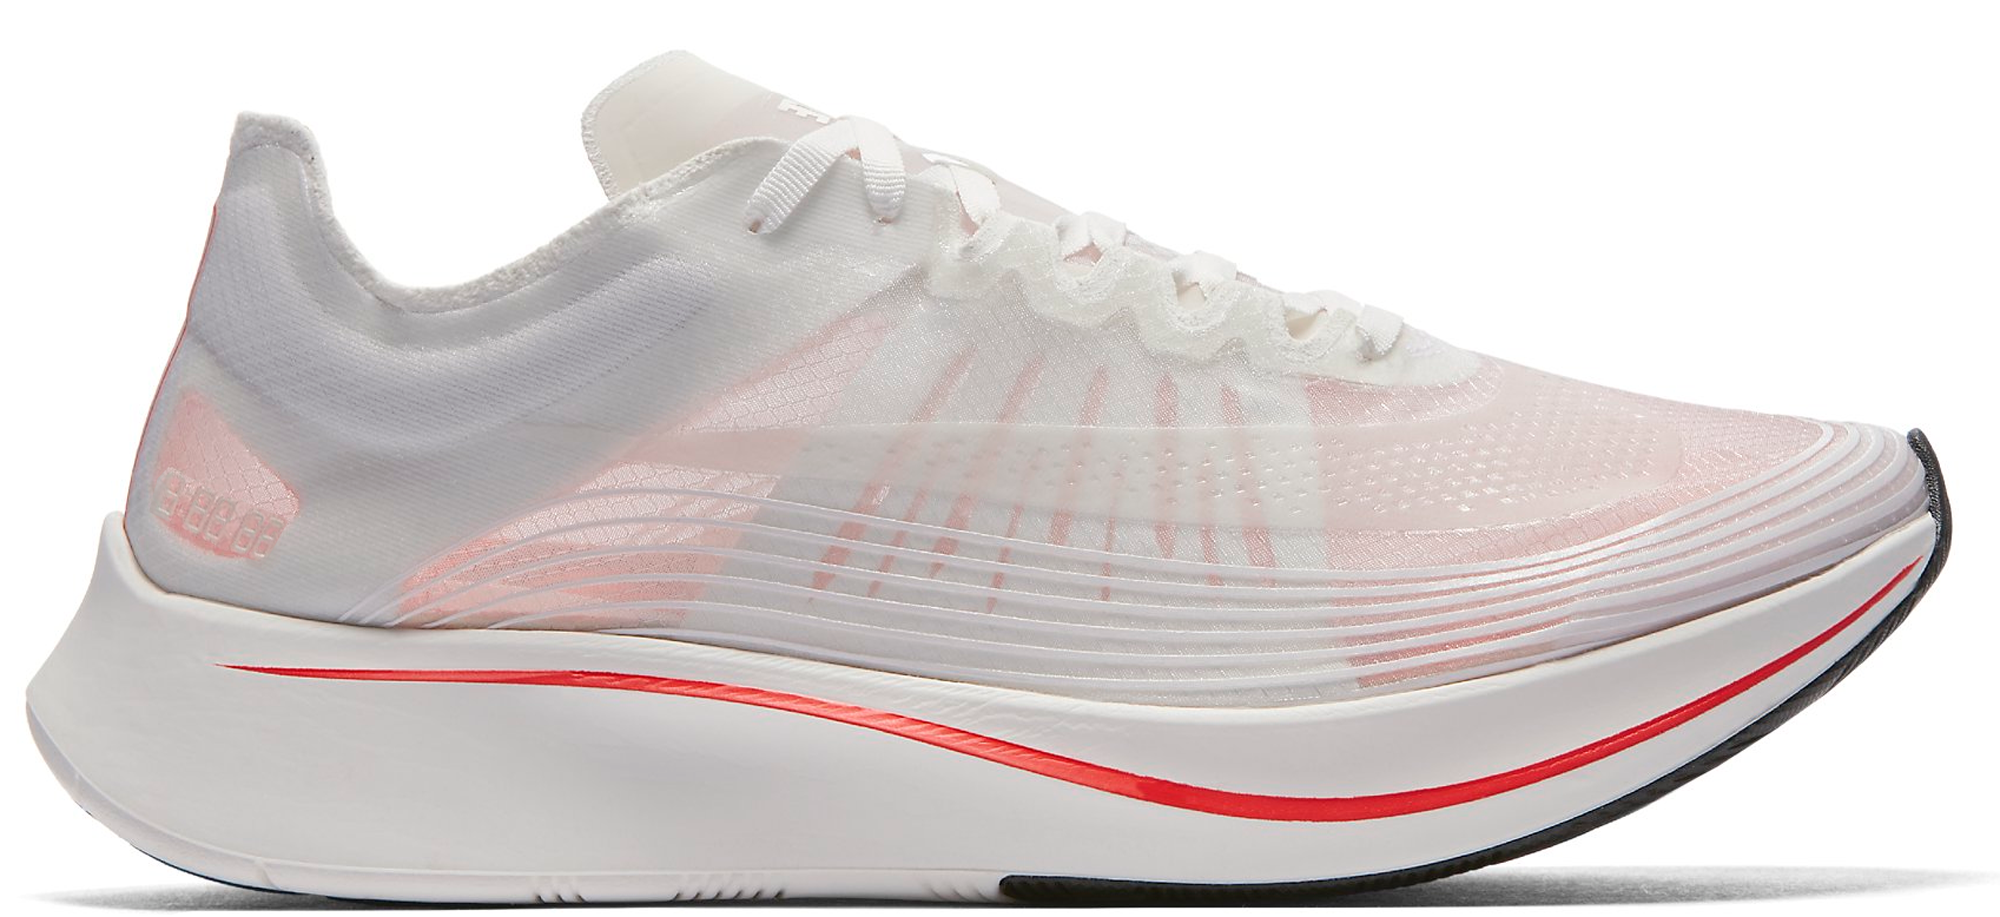 Nike Zoom Fly SP Breaking 2 (2018)